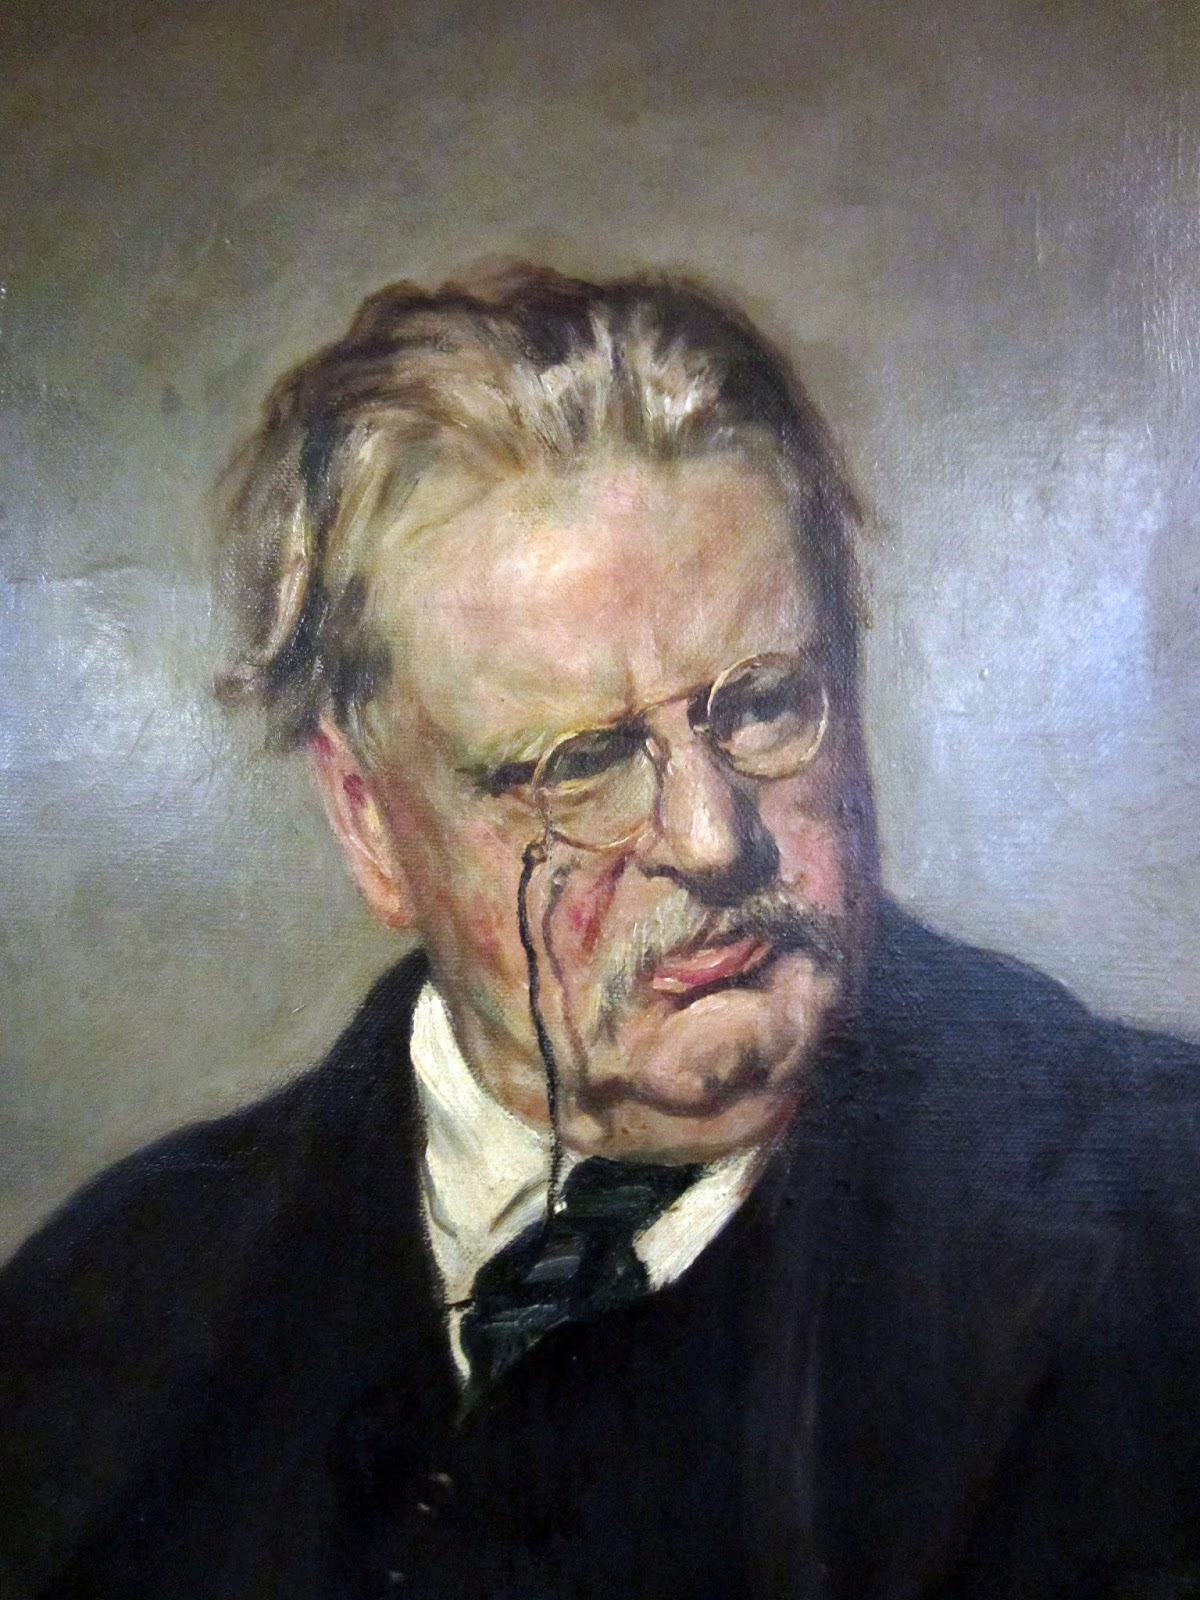 gilbert keith chesterton (gilbert keith chesterton), 1874-1936, english author conservative, even reactionary, in his thinking, chesterton was a convert (1922) to roman catholicism and its champion he has been called the prince of paradox because his dogma is often hidden beneath a light, energetic, and whimsical style.